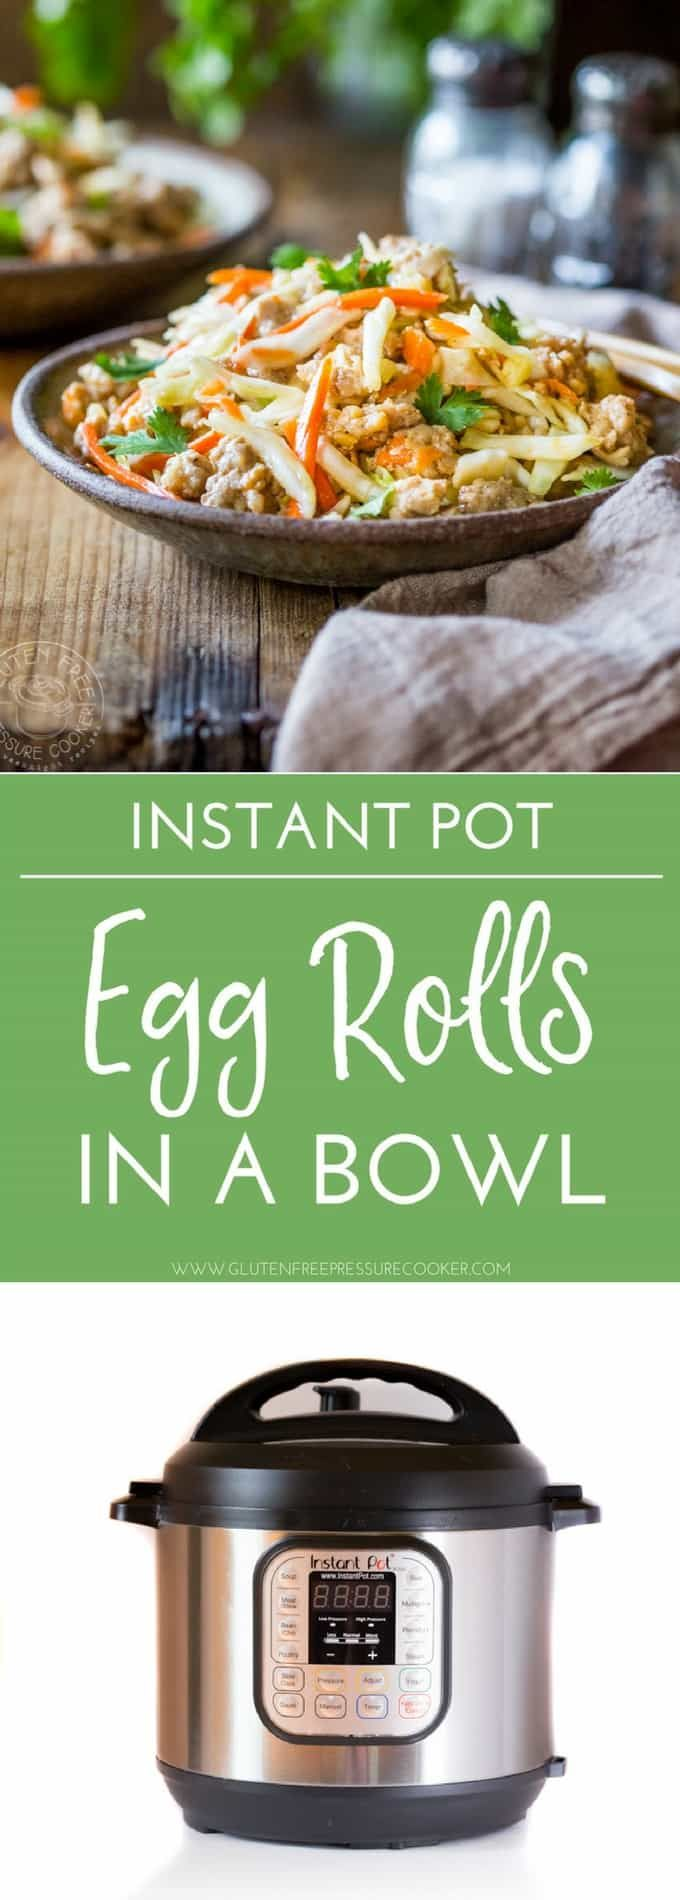 384 best instant pot images on pinterest instant pot pressure instant pot egg rolls in a bowl its gluten free an can be made paleo cookbook recipesmeat recipescooking recipesdinner forumfinder Gallery